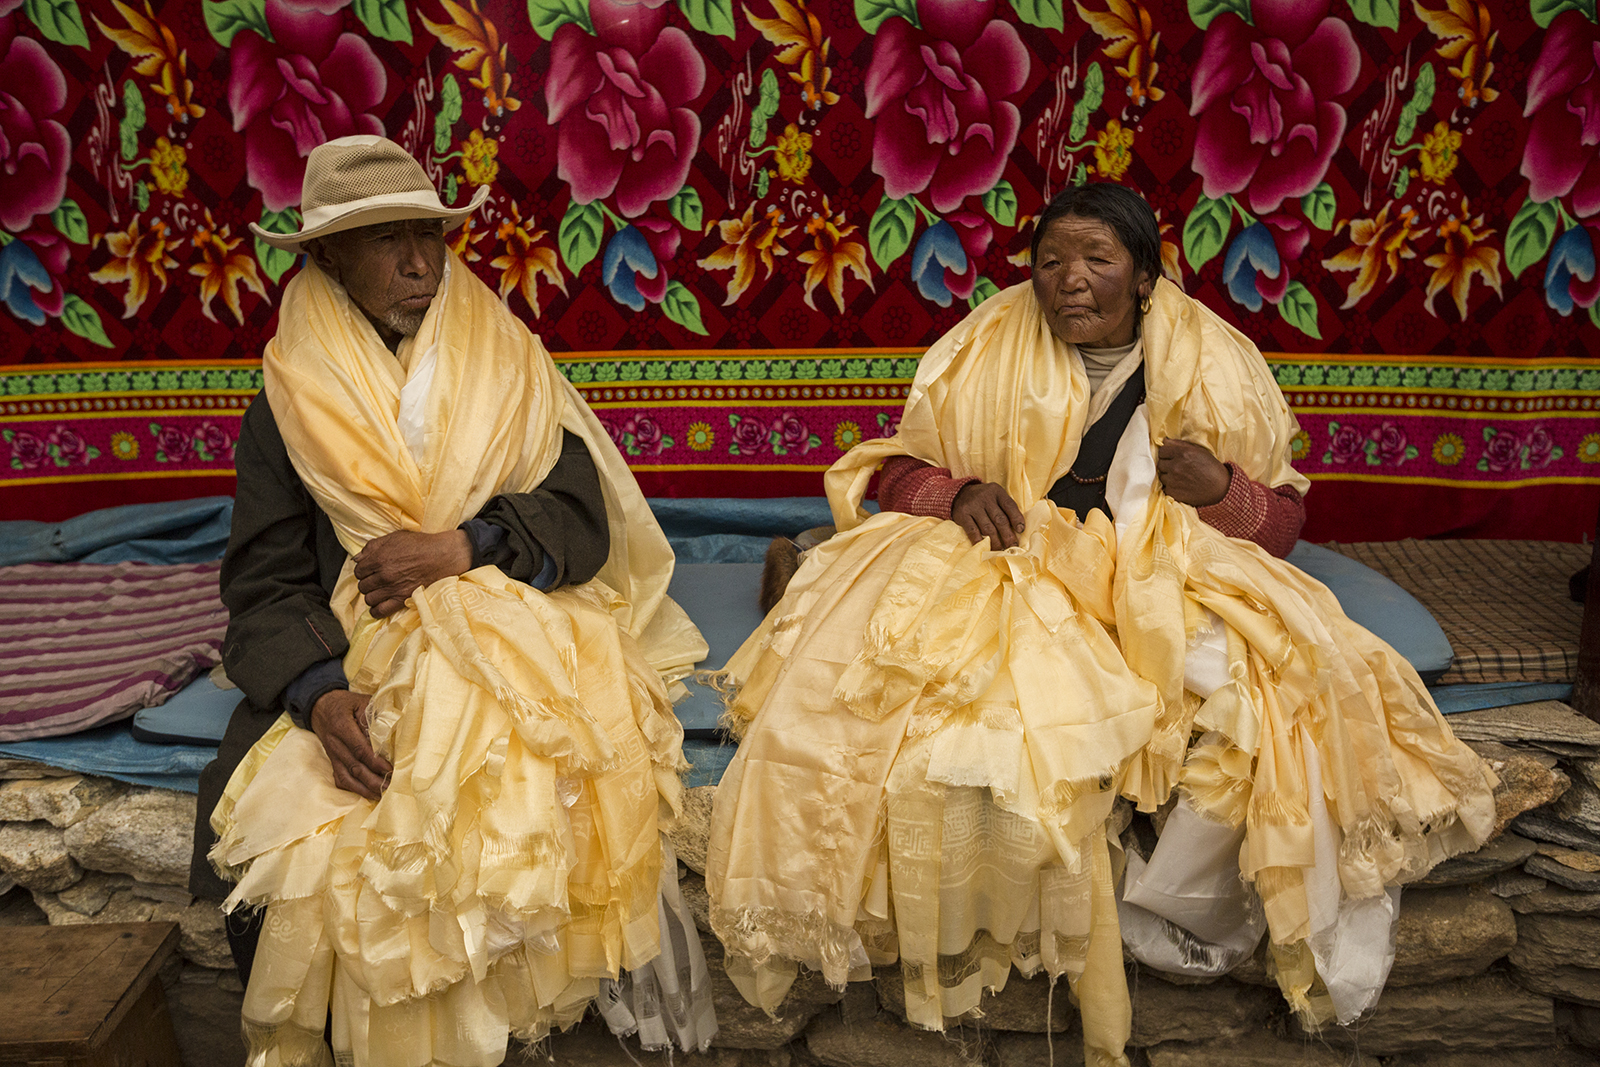 Nyima Doma's Family gives money and Katas to the monks overseeing the Dumji Festival.  Nyima nd her husband (Da Rita Sherpa) were supposed to be organizers for the festival this year but he died at Camp 3 on Everest of heart failure while working for IMG.  In his place his father and mother (Phu Dorji and Phura Yangji (mother) and Nyima's brother  (Ang Chuldim) are helping with the work.  It is an emotional day for the 4, as they are honored with Katas (honor scarves) from the community.